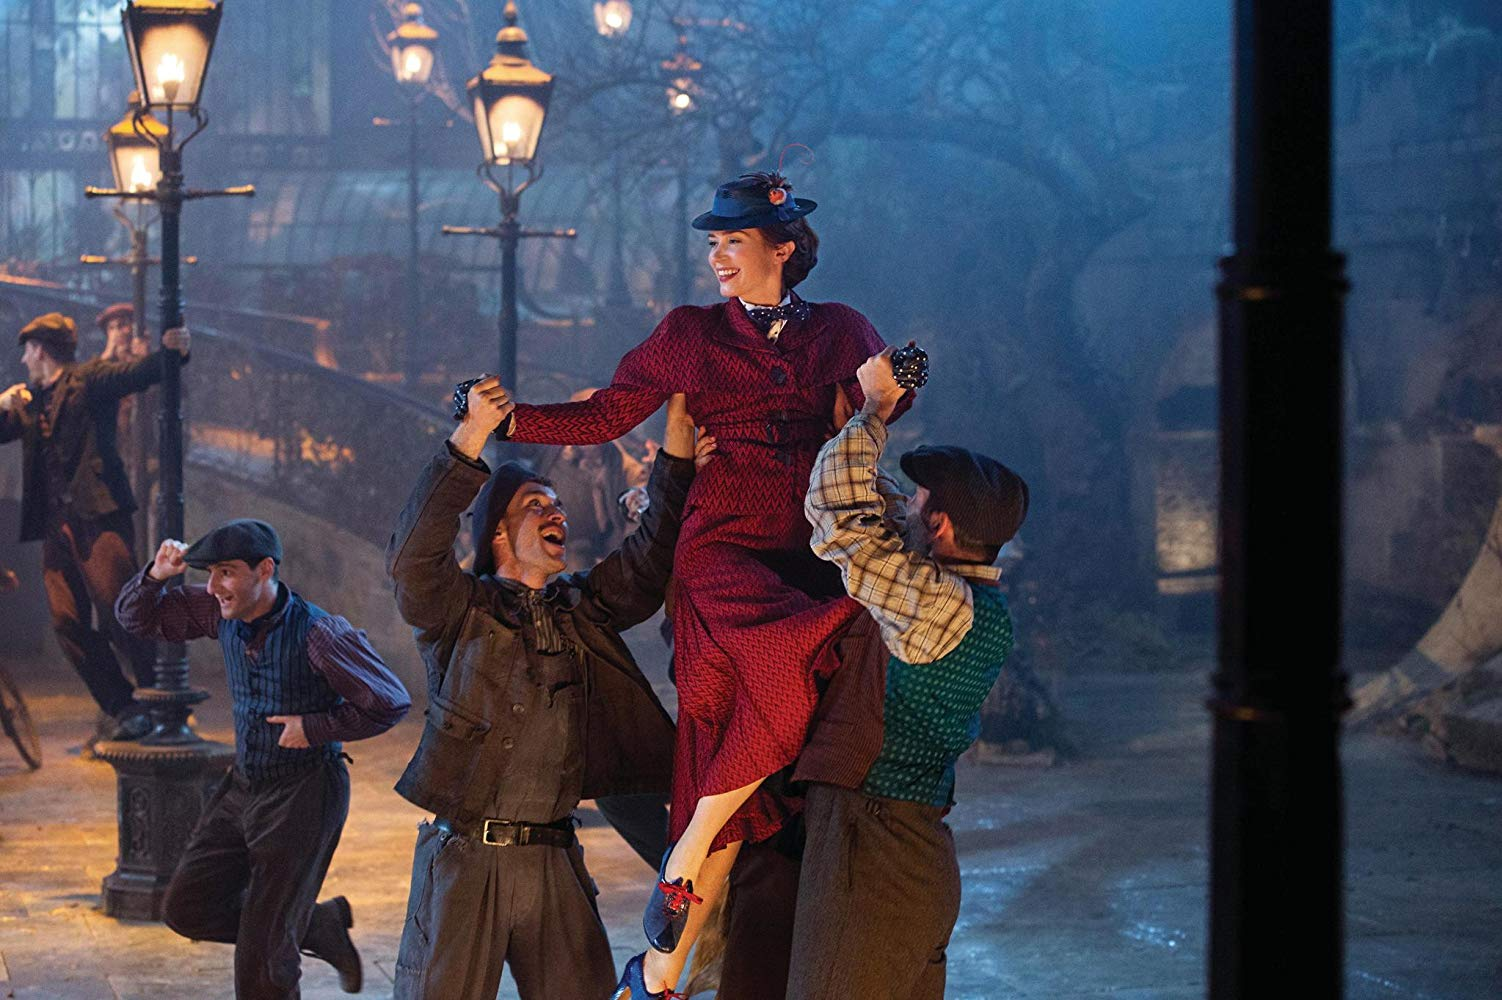 Come and spend half term in the company of Mary Poppins. In Depression-era London, a now-grown Jane and Michael Banks, along with Michael's three children, are visited by the enigmatic Mary Poppins following a personal loss. Through her unique magical skills, and with the aid of her friend Jack, she helps the family rediscover the joy and wonder missing in their lives.